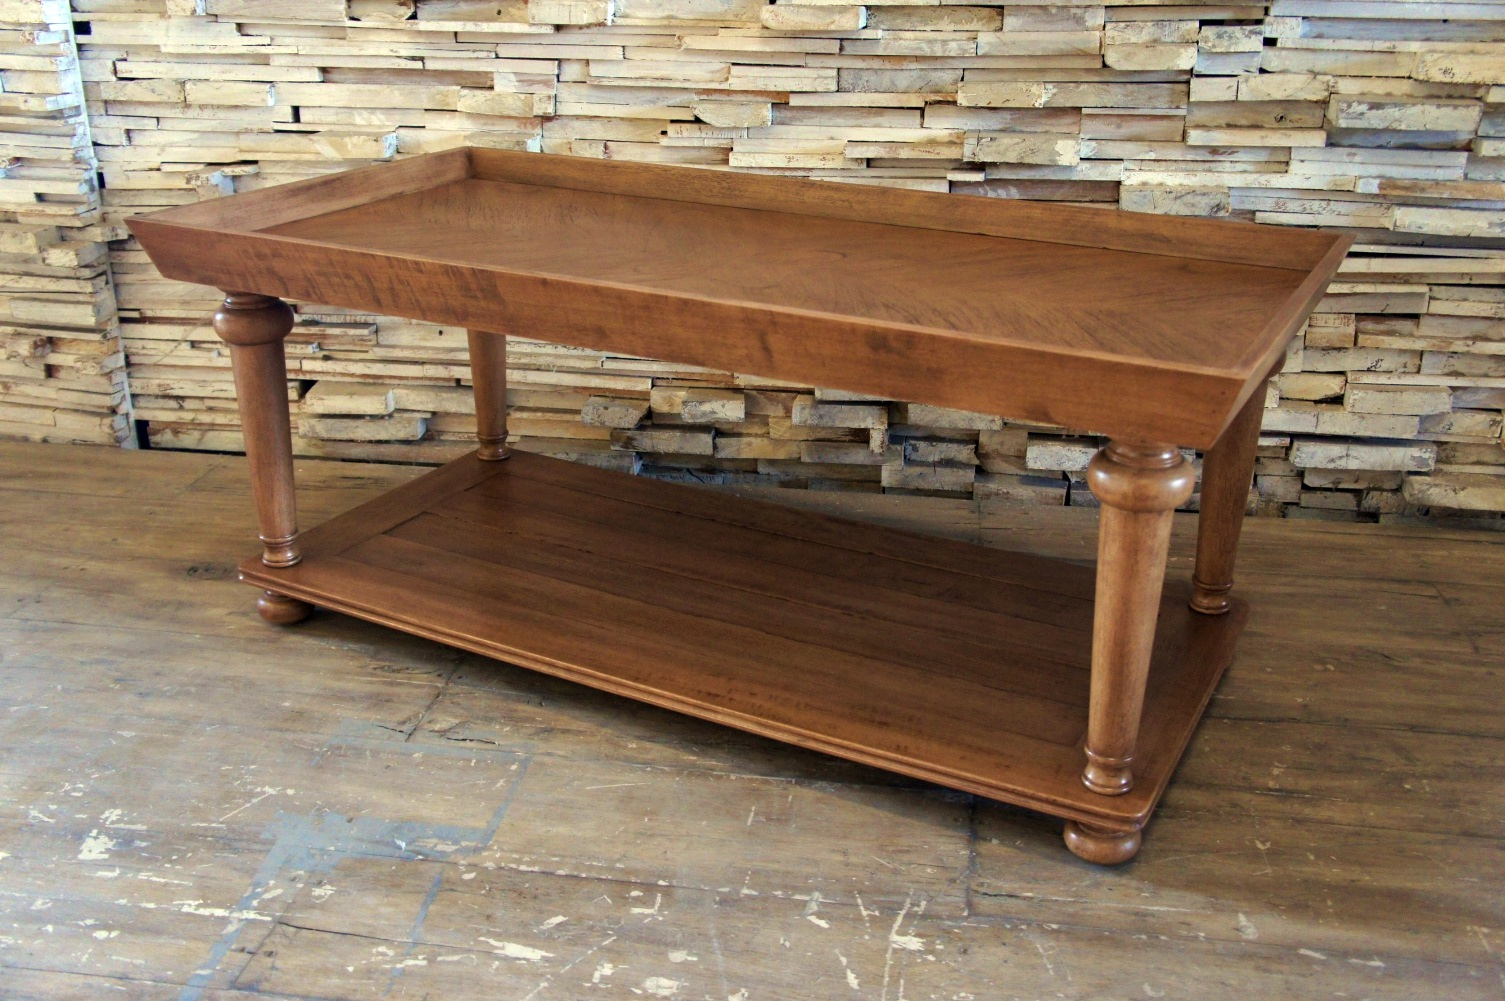 LESOTHO COFFEE TABLE